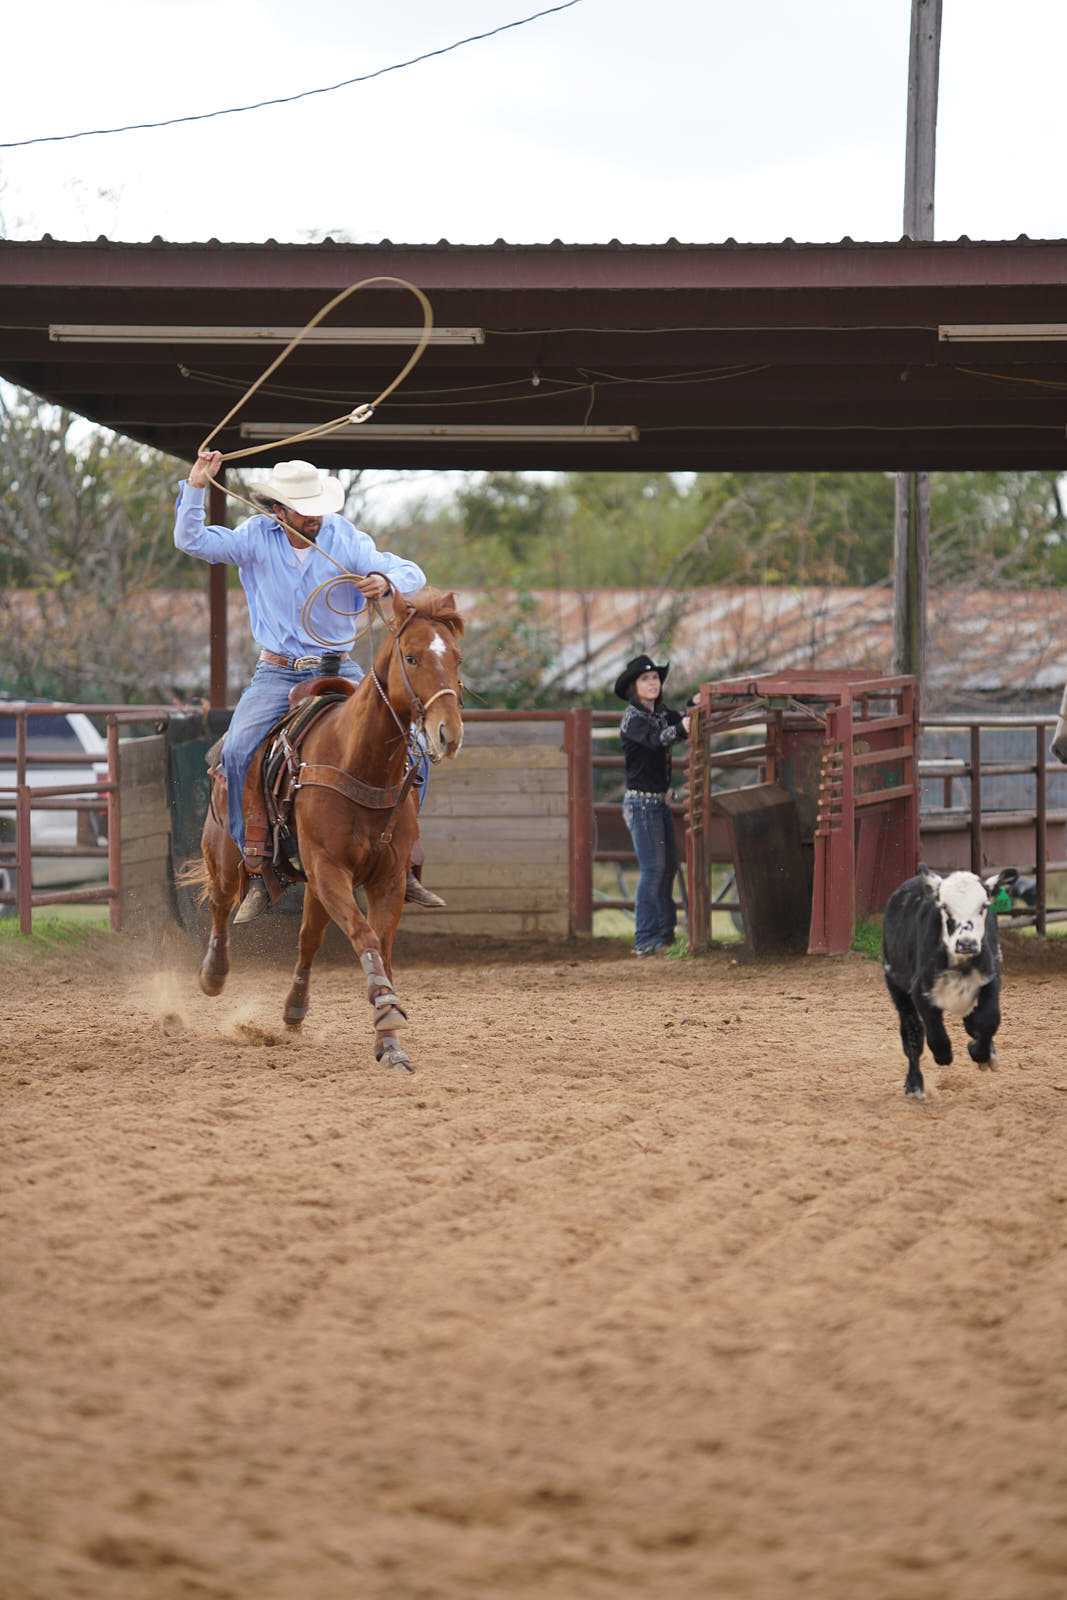 Sony a99 II review - steer roping 2